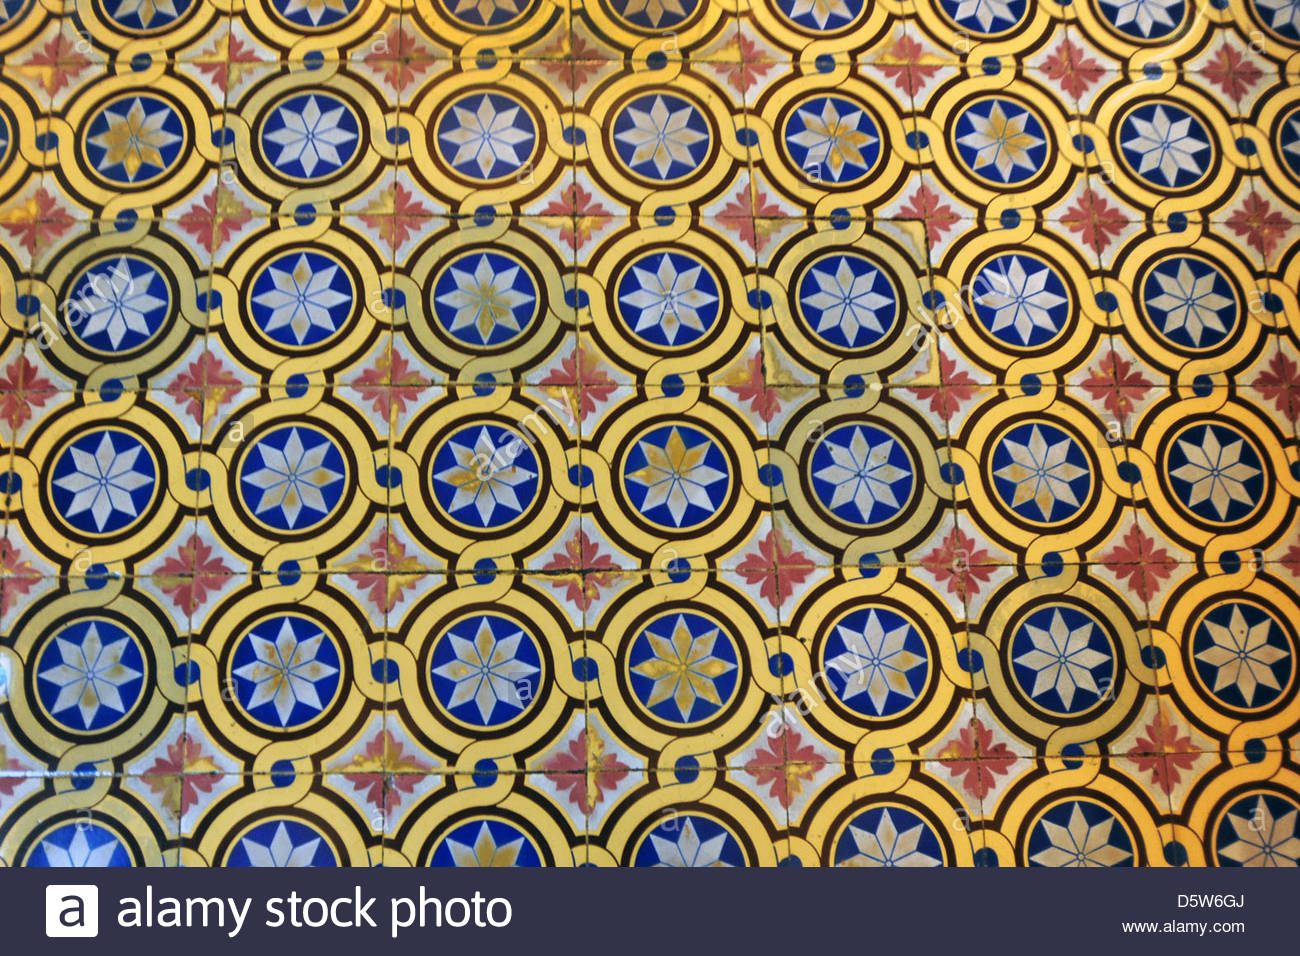 tile-floor-us-capitol-washington-dc-tile-floorfloor-tile-us-capitol-D5W6GJ.jpg